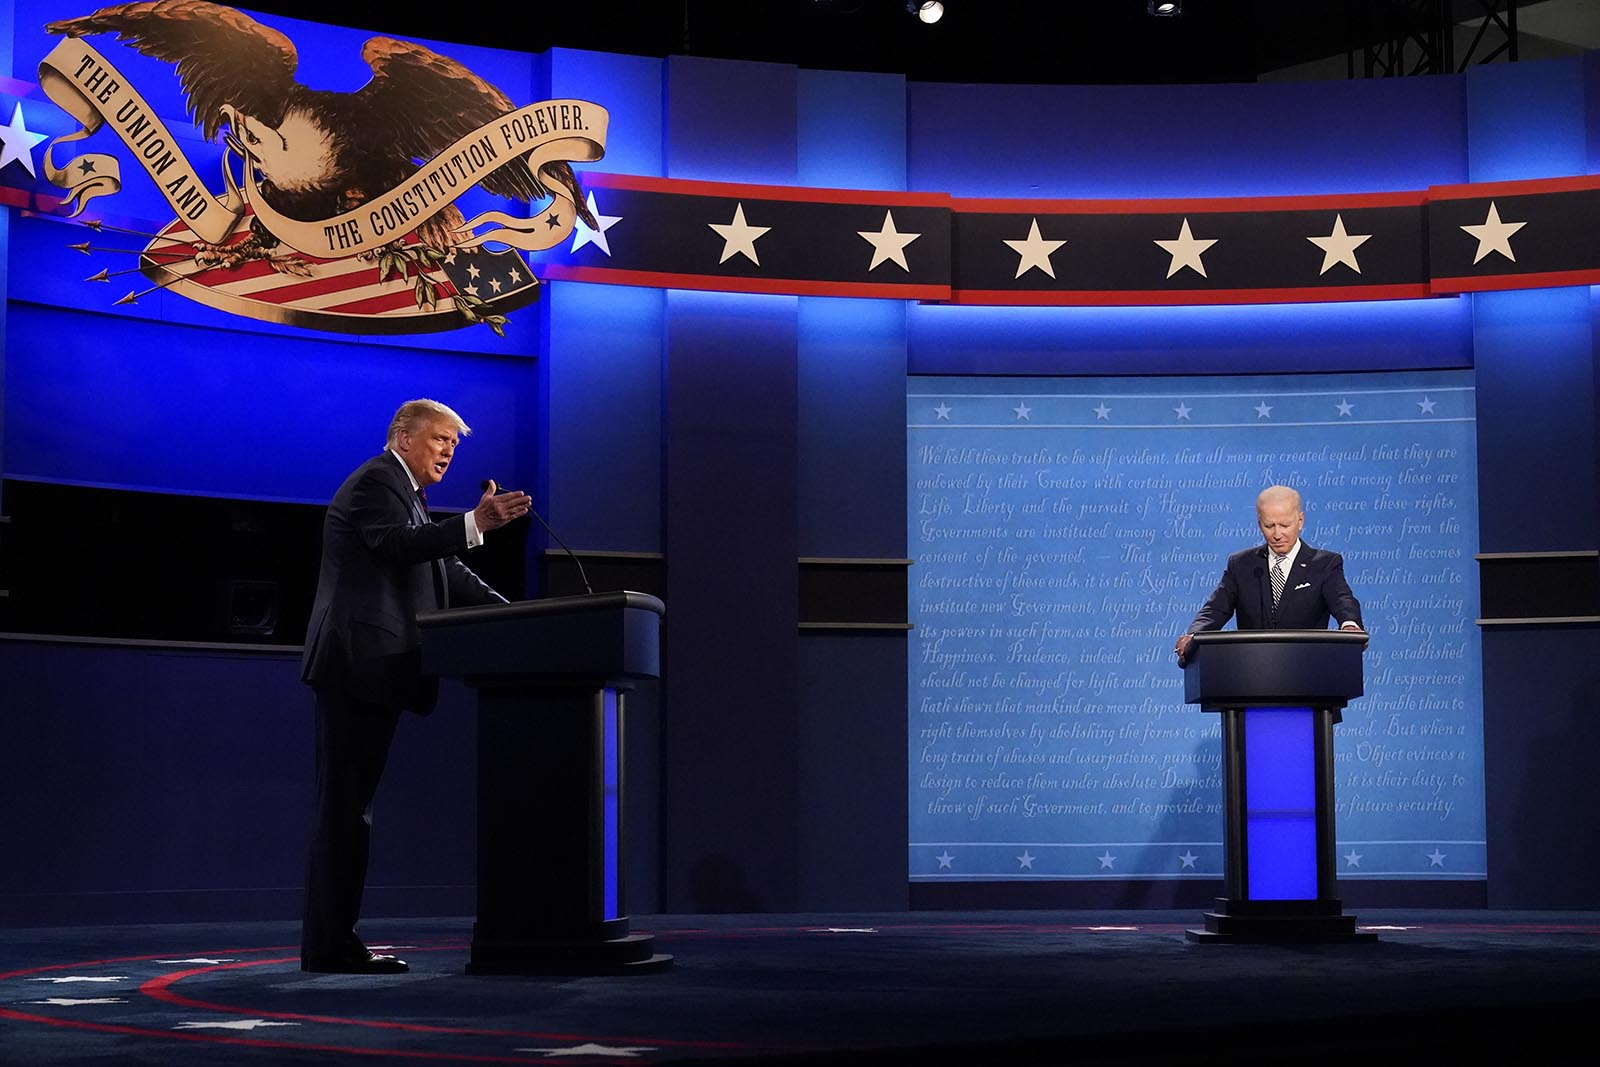 President Donald Trump and Democratic presidential candidate former Vice President Joe Biden during the first presidential debate Tuesday, Sept. 29, in Cleveland, Ohio.